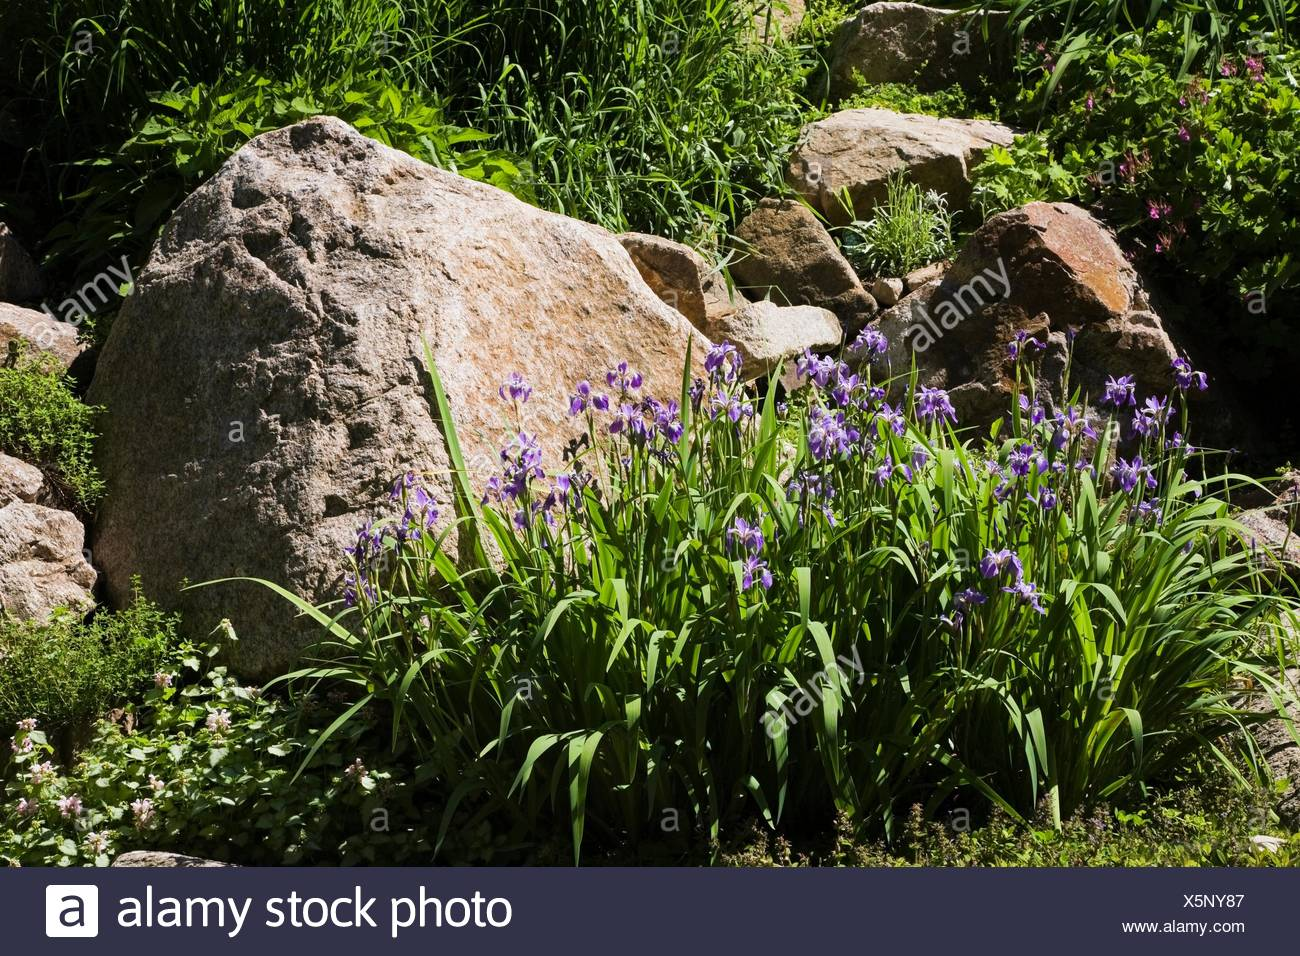 Purple Iris Flowers Bordered By Large Rock In Backyard Garden In